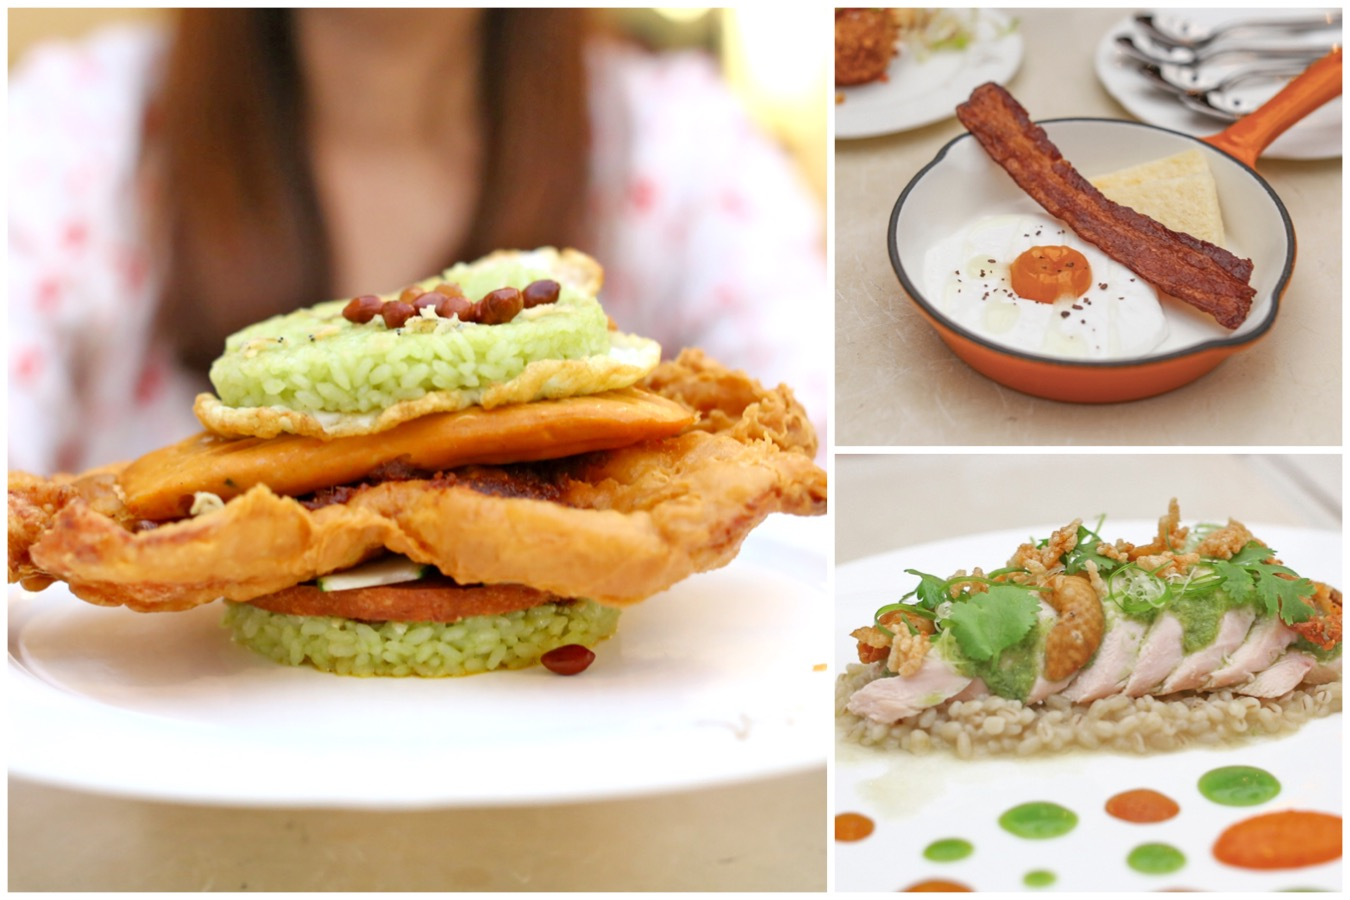 Antoinette - NEW Dishes With Local Spin. XXXL Nasi Lemak Burger, Hakka Gnocchi, And Salted Egg Cake